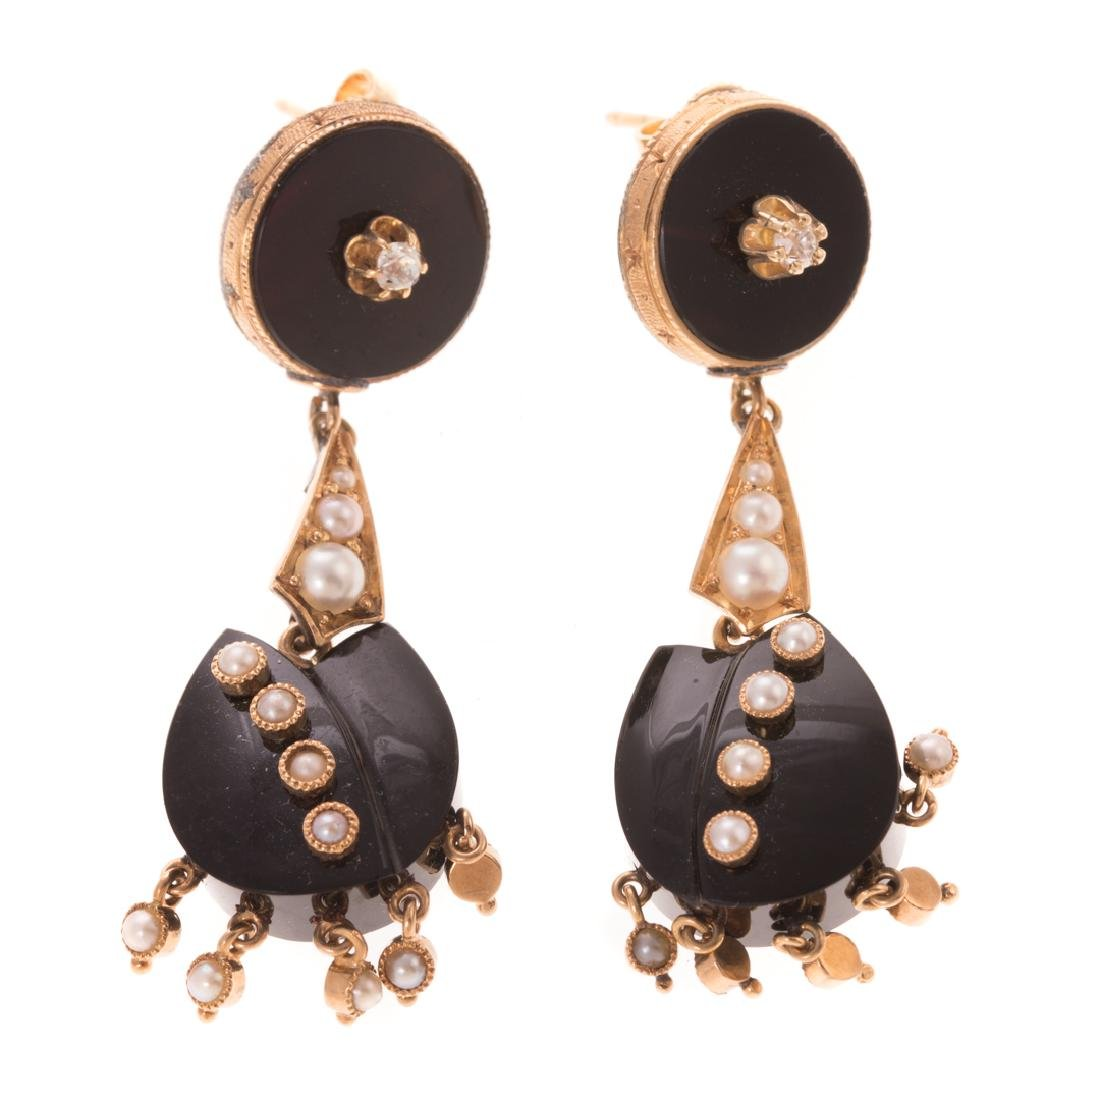 Two Pair of Victorian Earrings in 14K Gold - 3